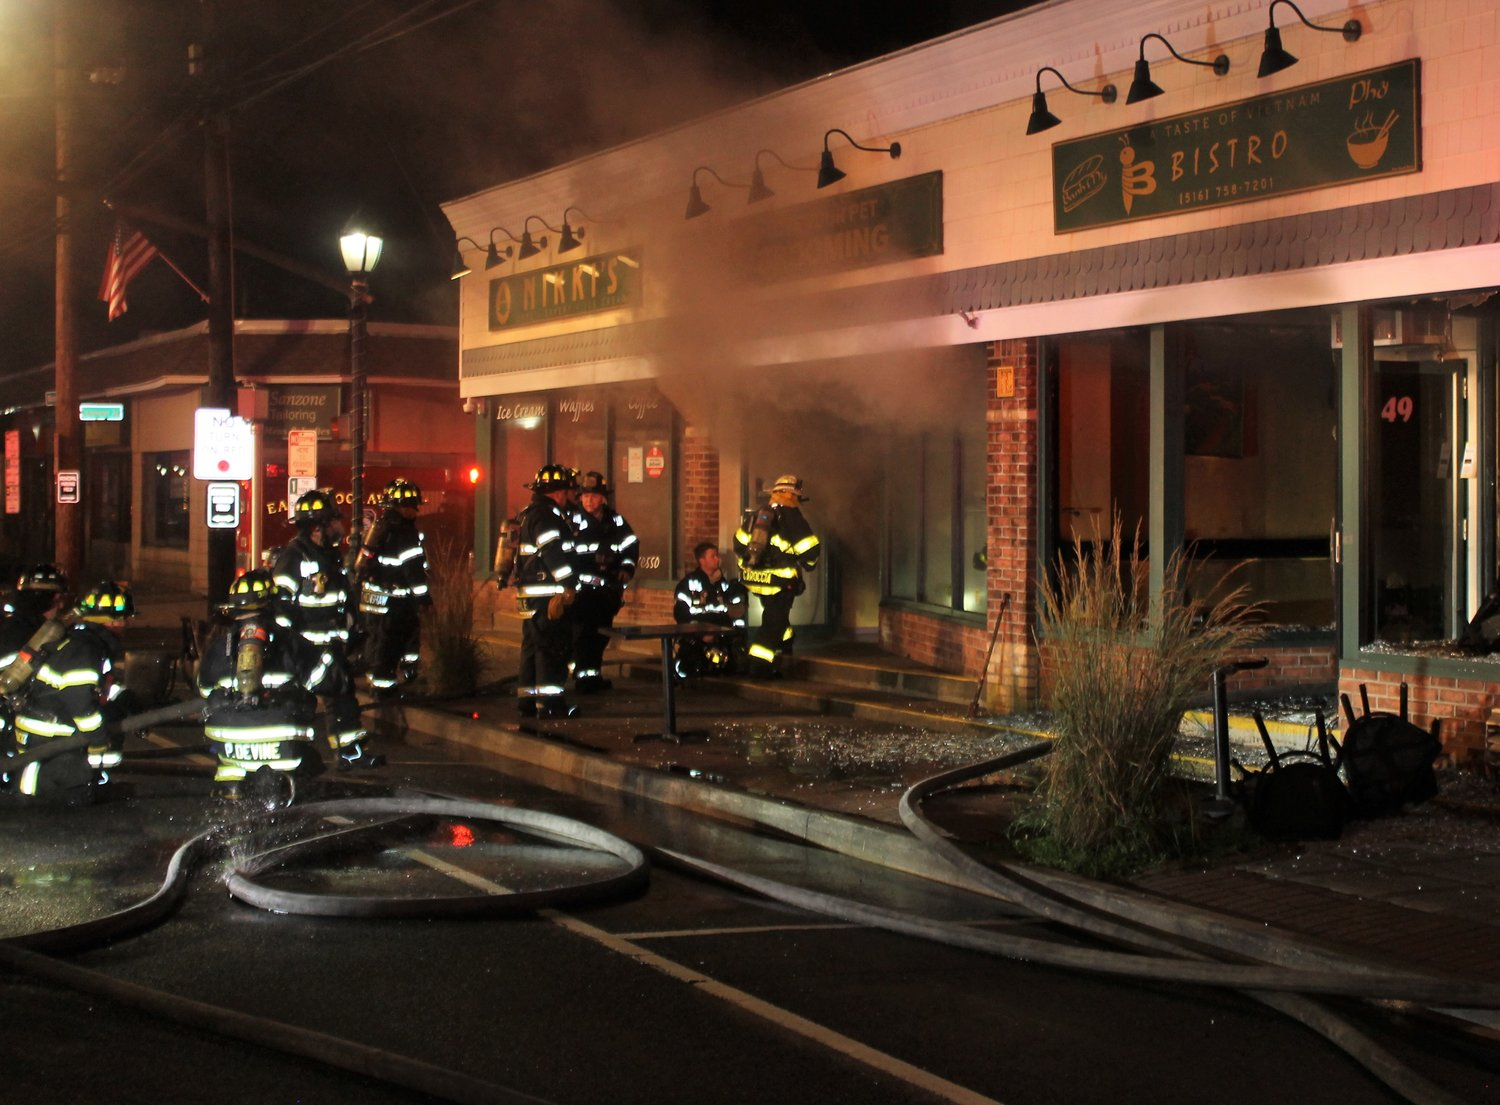 Firefighters rushed to extinguish the fire at the businesses that night after receiving a call around 1 a.m.